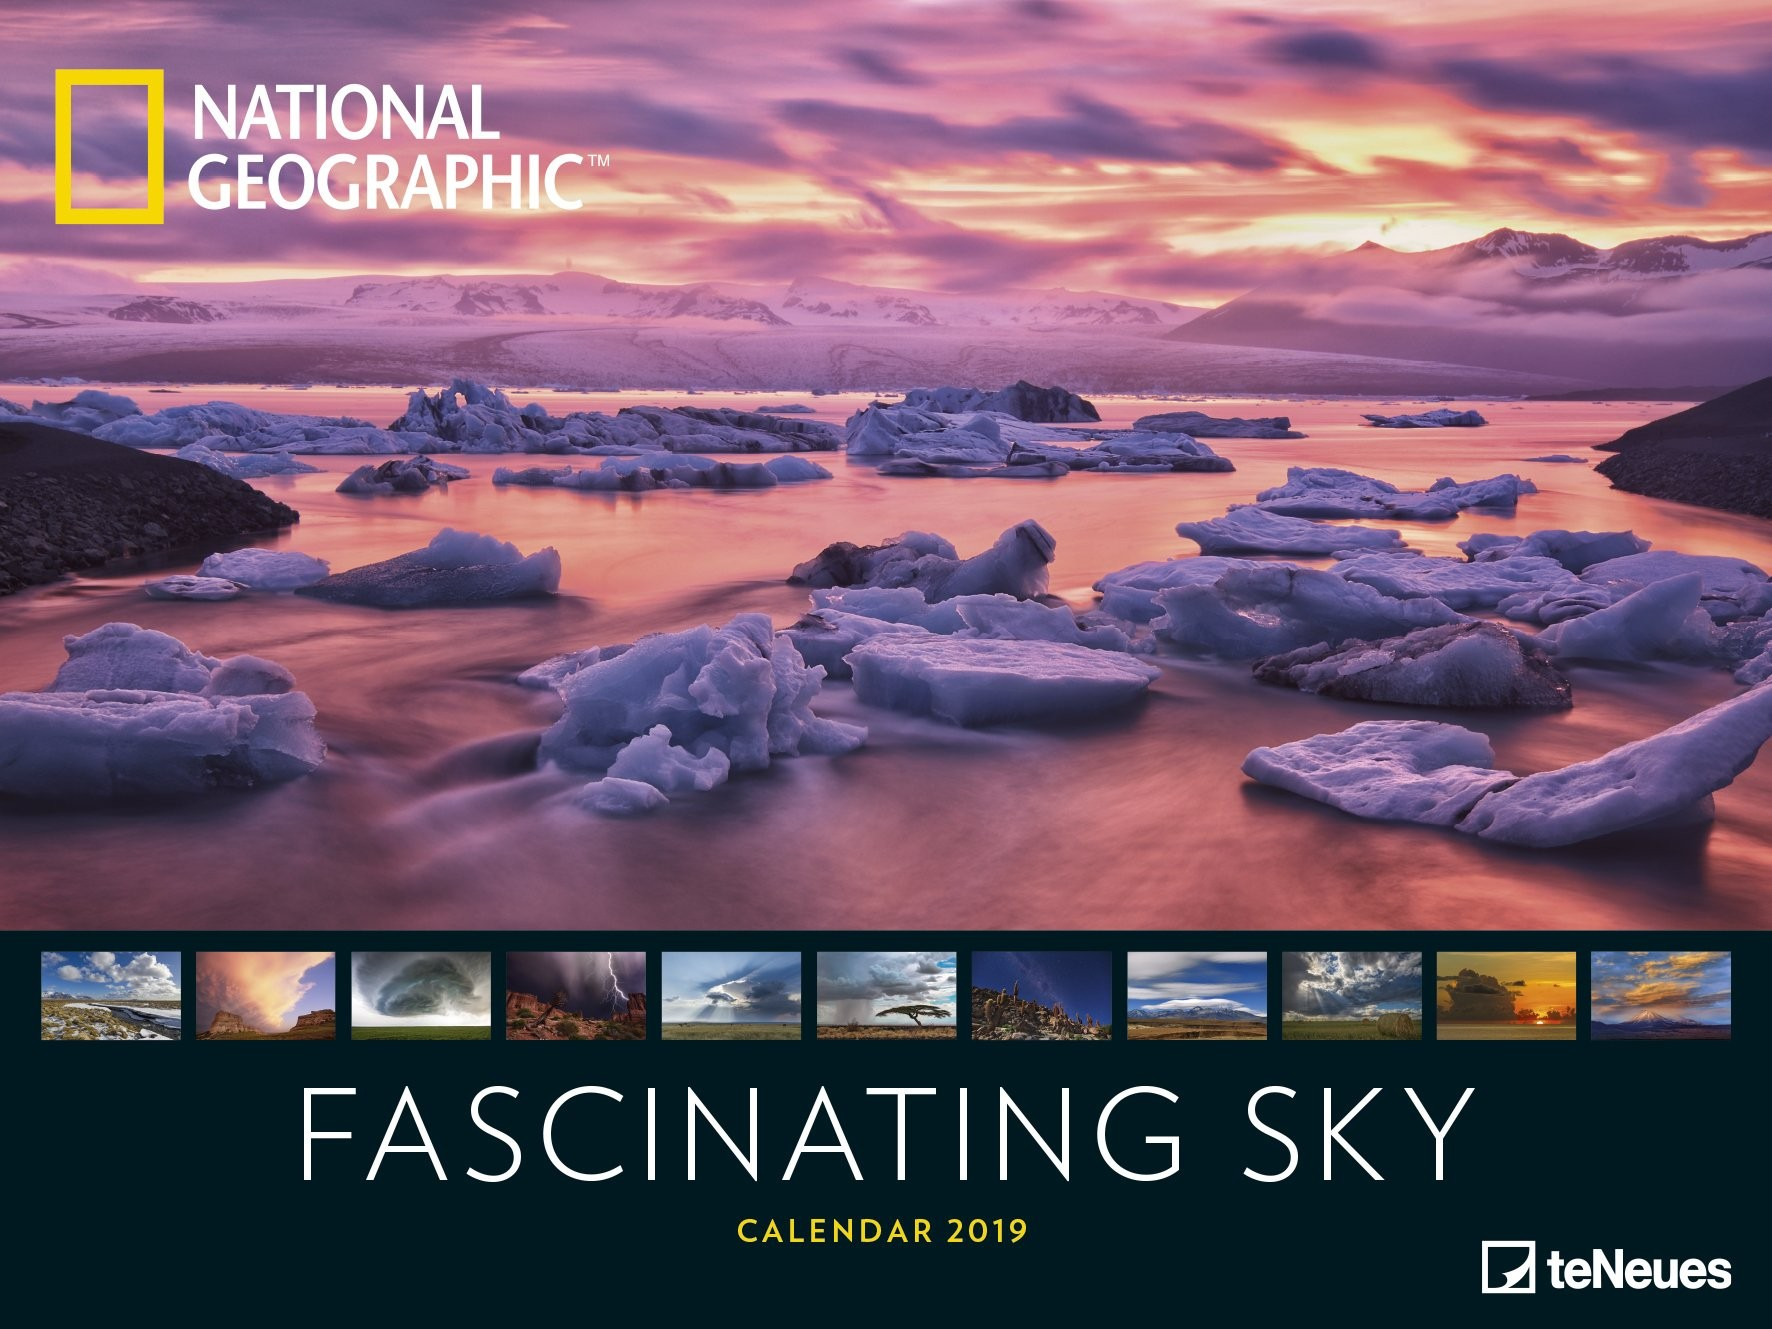 Calendario Olandese 2019 Da Stampare Gratis Actual Amazon National Geographic Fascinating Sky 2019 Posterkalender Of Calendario Olandese 2019 Da Stampare Gratis Más Arriba-a-fecha Vai Alla Mostra